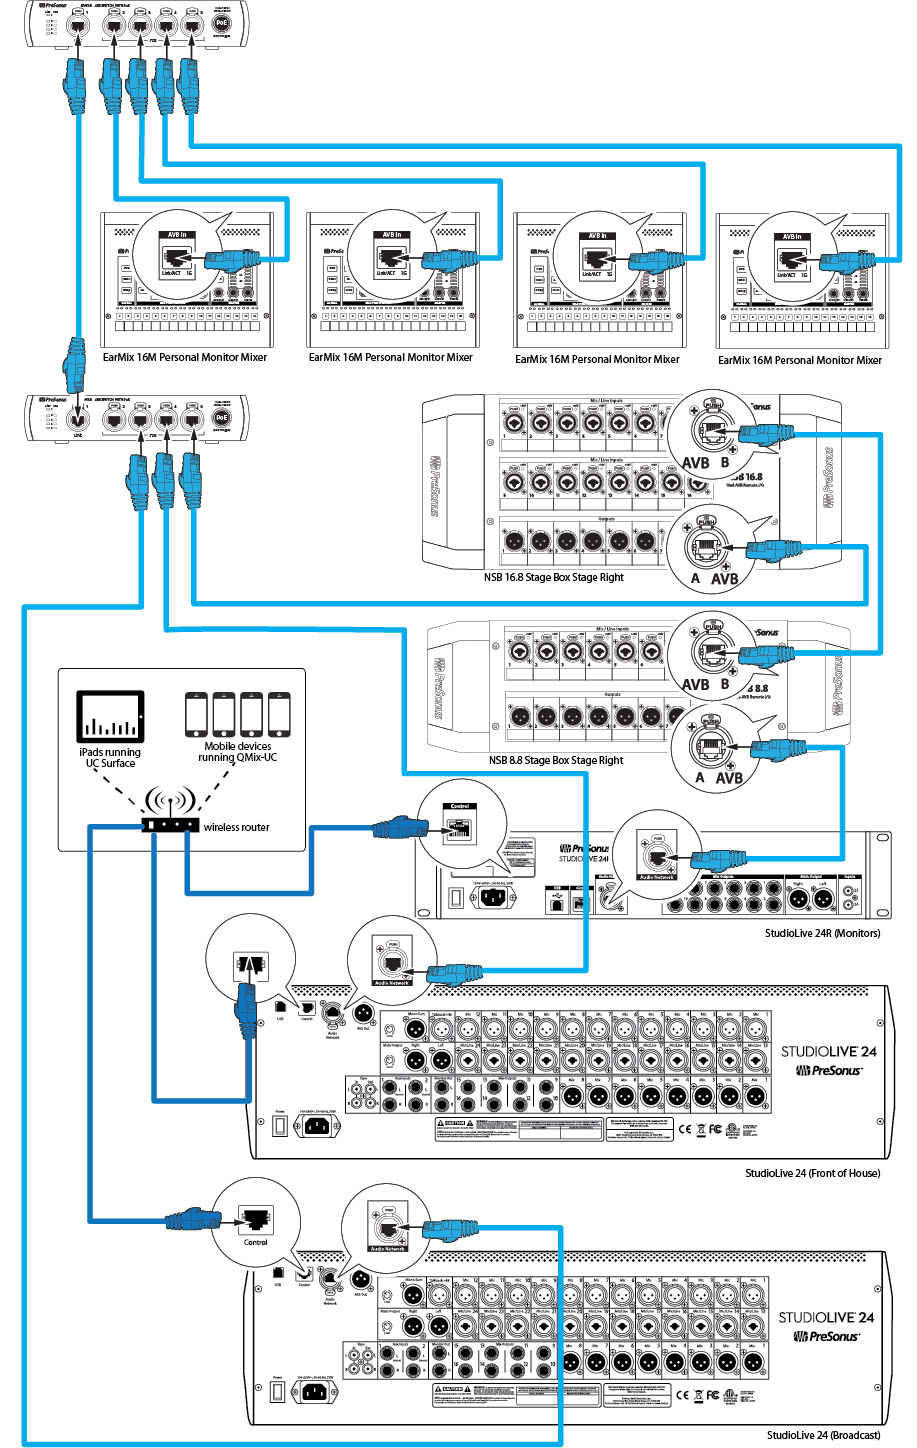 medium resolution of within the presonus avb ecosystem a studiolive series iii mixer must be used the master word clock for the network for some devices clocking is handled